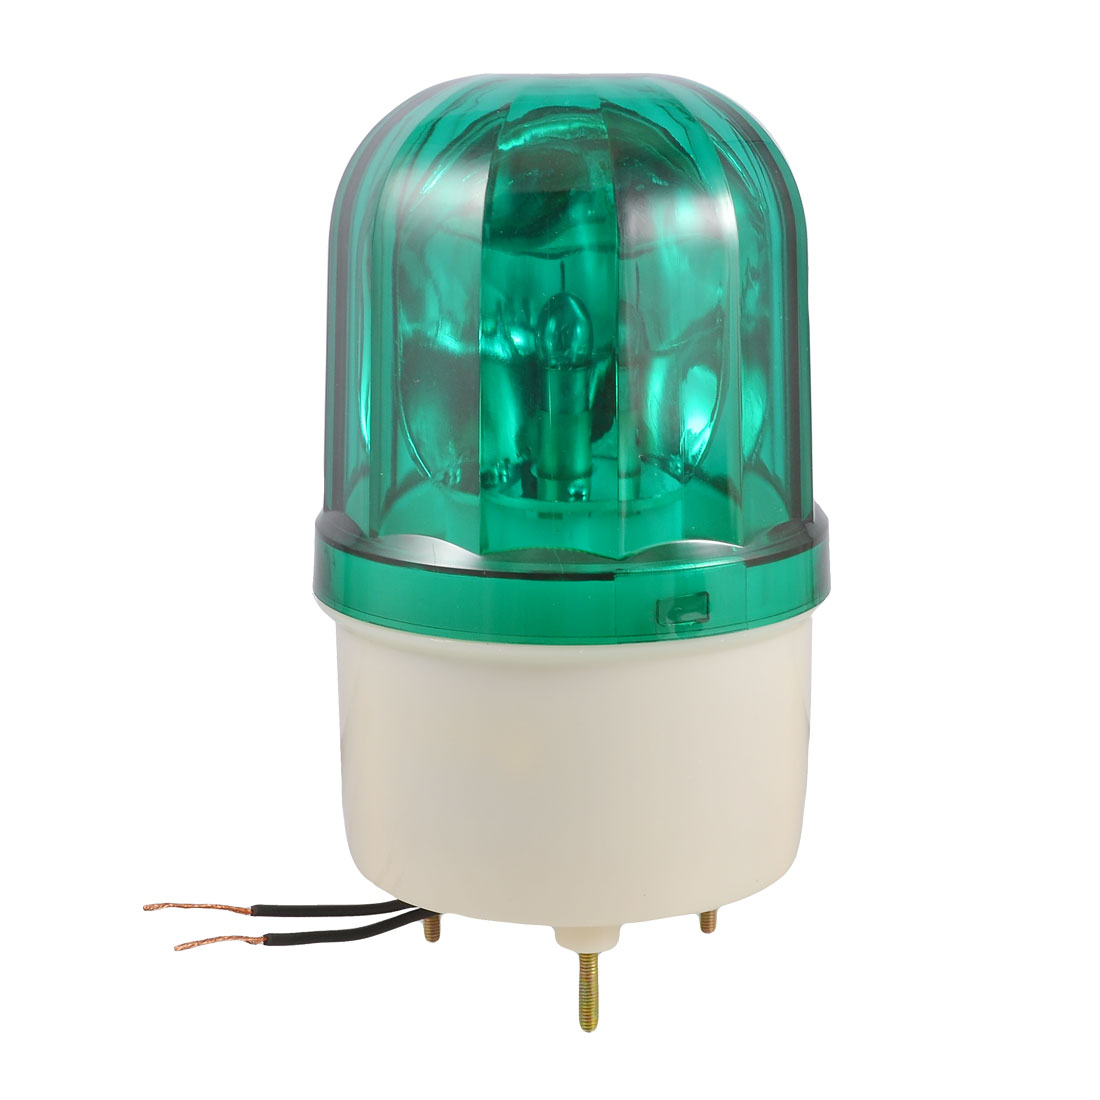 AC 110V 10W Green Rotator Rotary Lamp Warning Light Beacon for Industrial